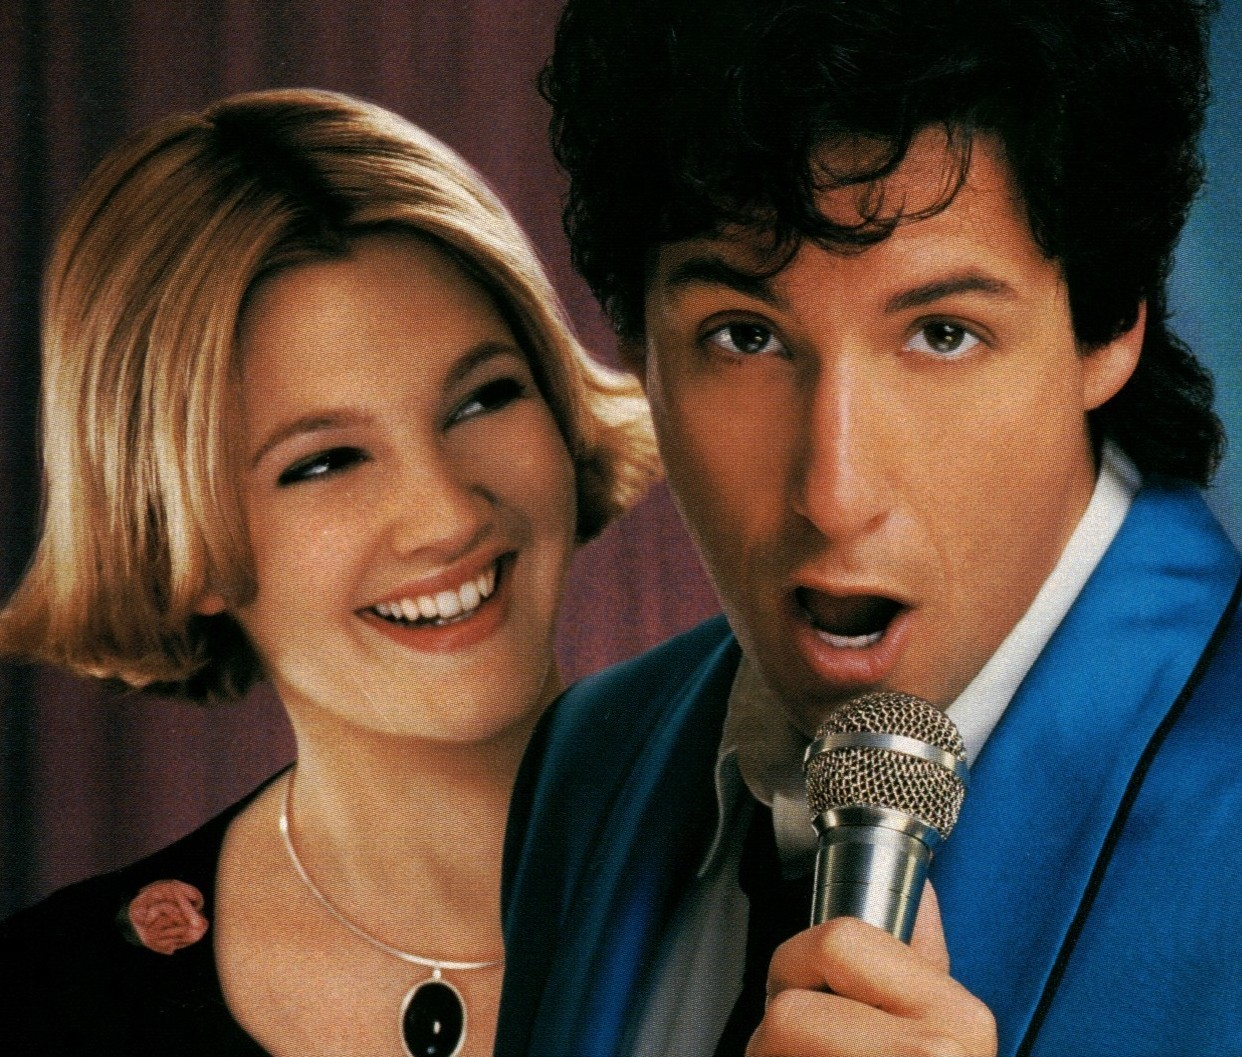 The Wedding Singer Images The Wedding Singer HD Wallpaper And Background Photos 6290339